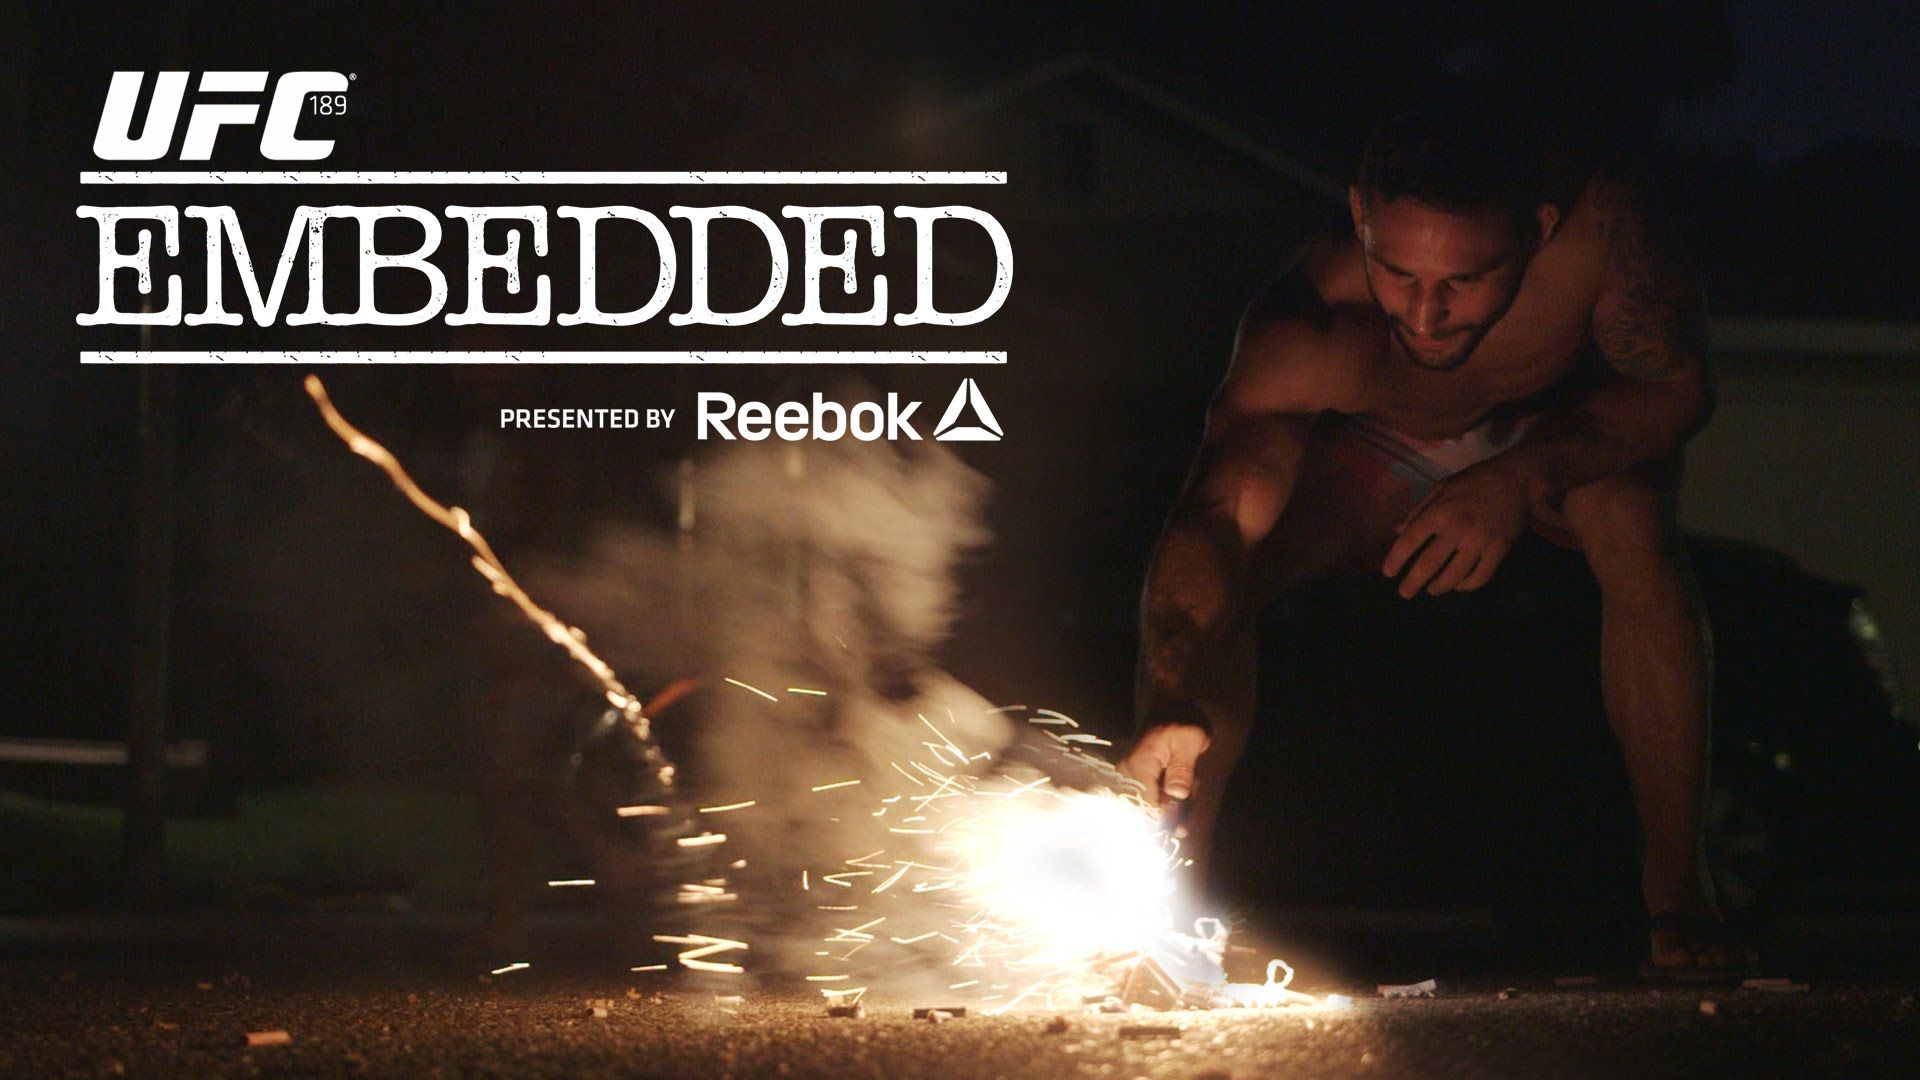 Ufc 189 Embedded Vlog Series Episode 5 On Episode 5 Of Ufc 189 Embedded Featherweight Title Contender Chad Mendes Continues To Trai Ufc 189 Ufc Episode 5